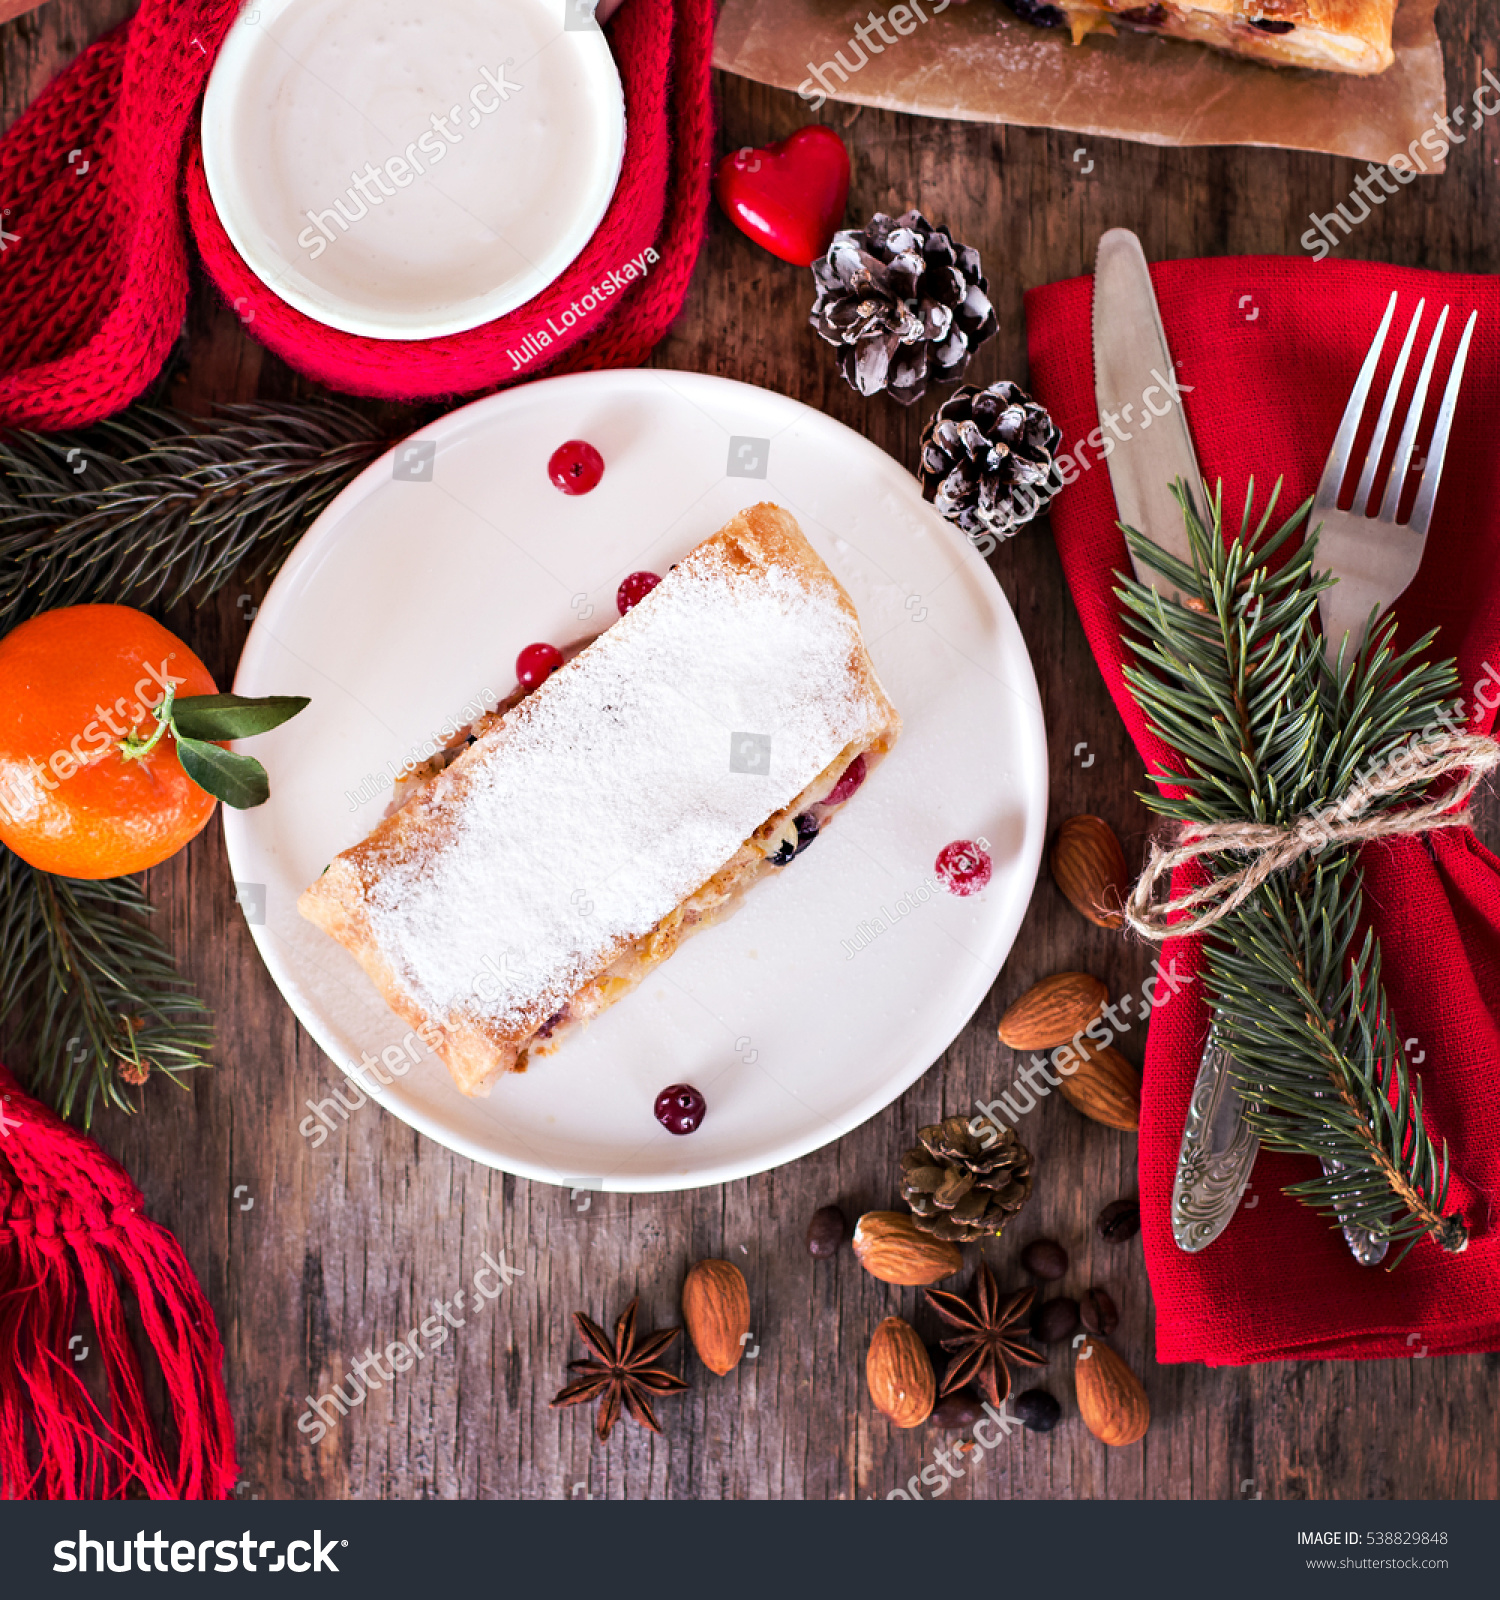 Strudel Winter Decor Christmas Homemade Pastry Stock Photo ...